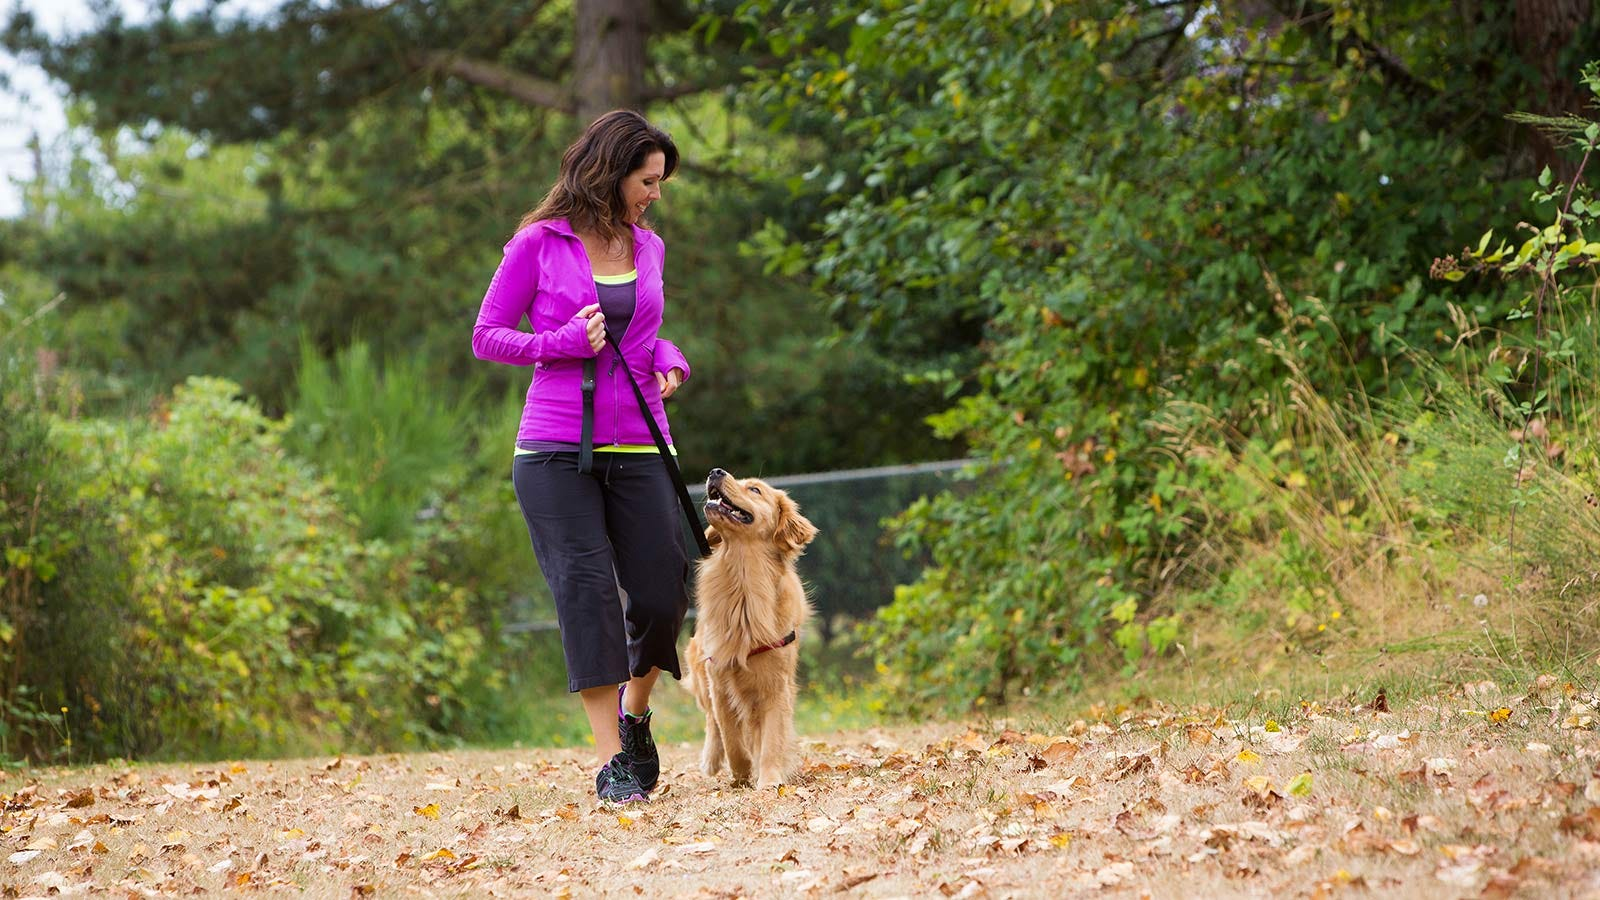 A woman walking her golden retriever on a nature trail.